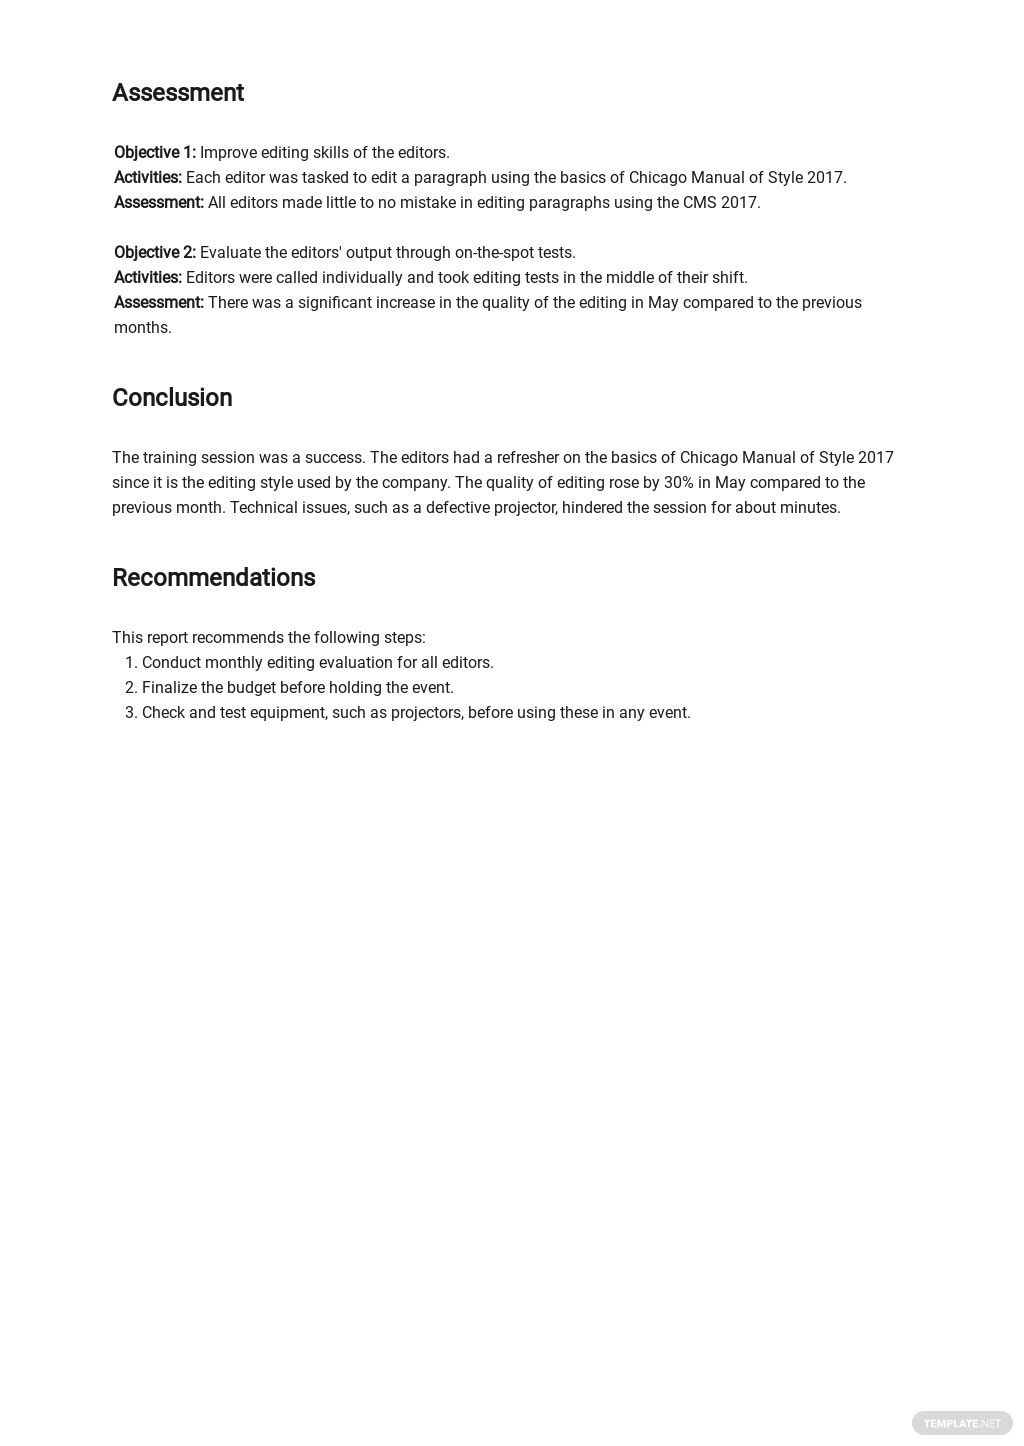 After Action Report Template 2.jpe